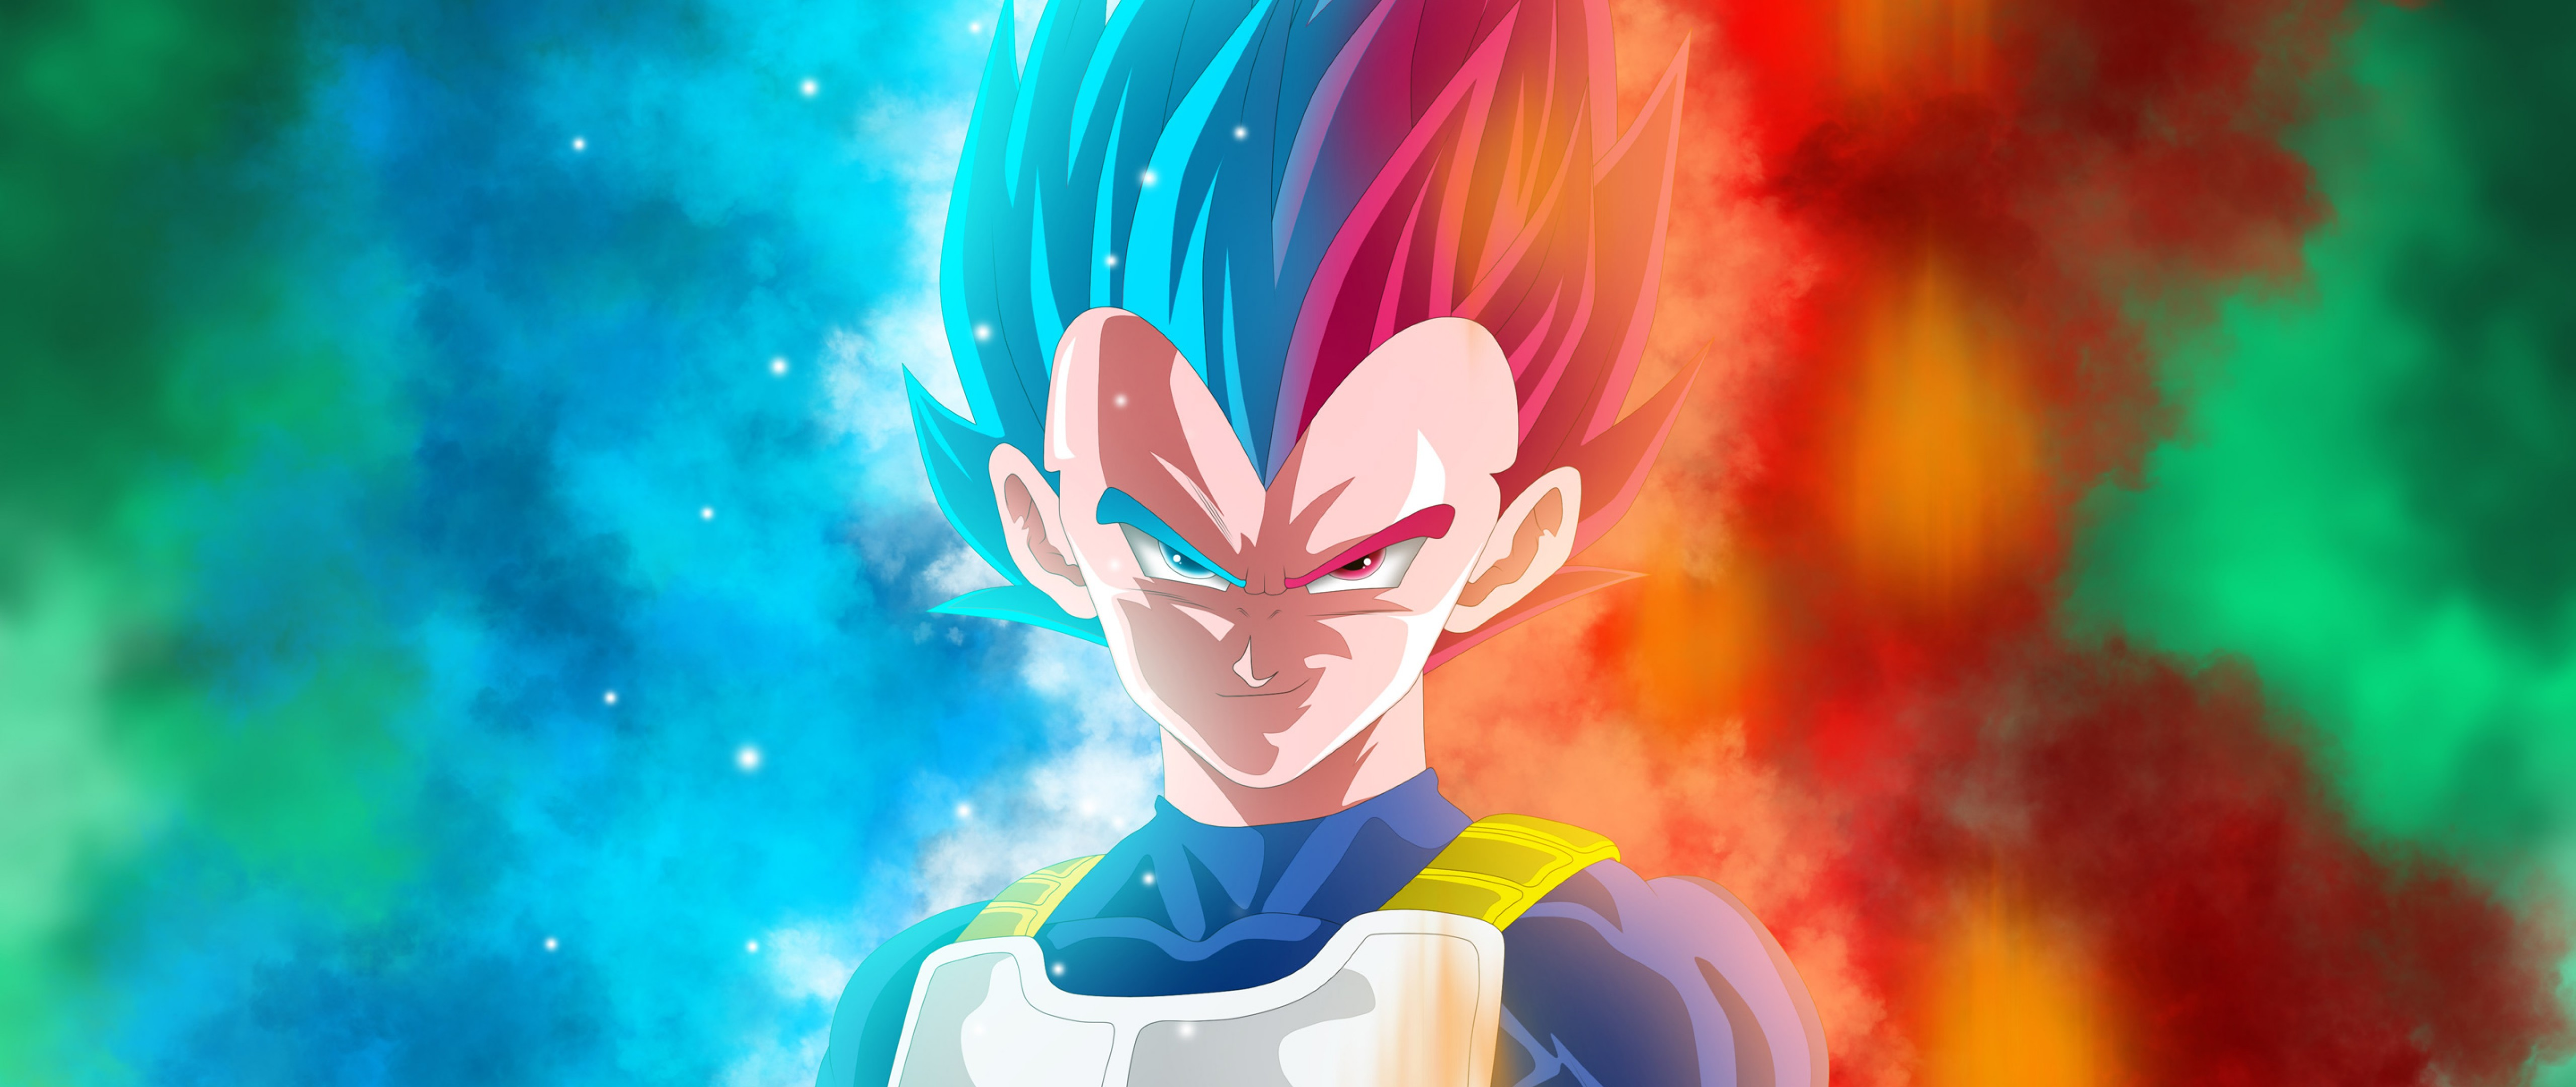 Image Dragon Ball Wallpapers 4k Ultra Hd Para Pc Dragon